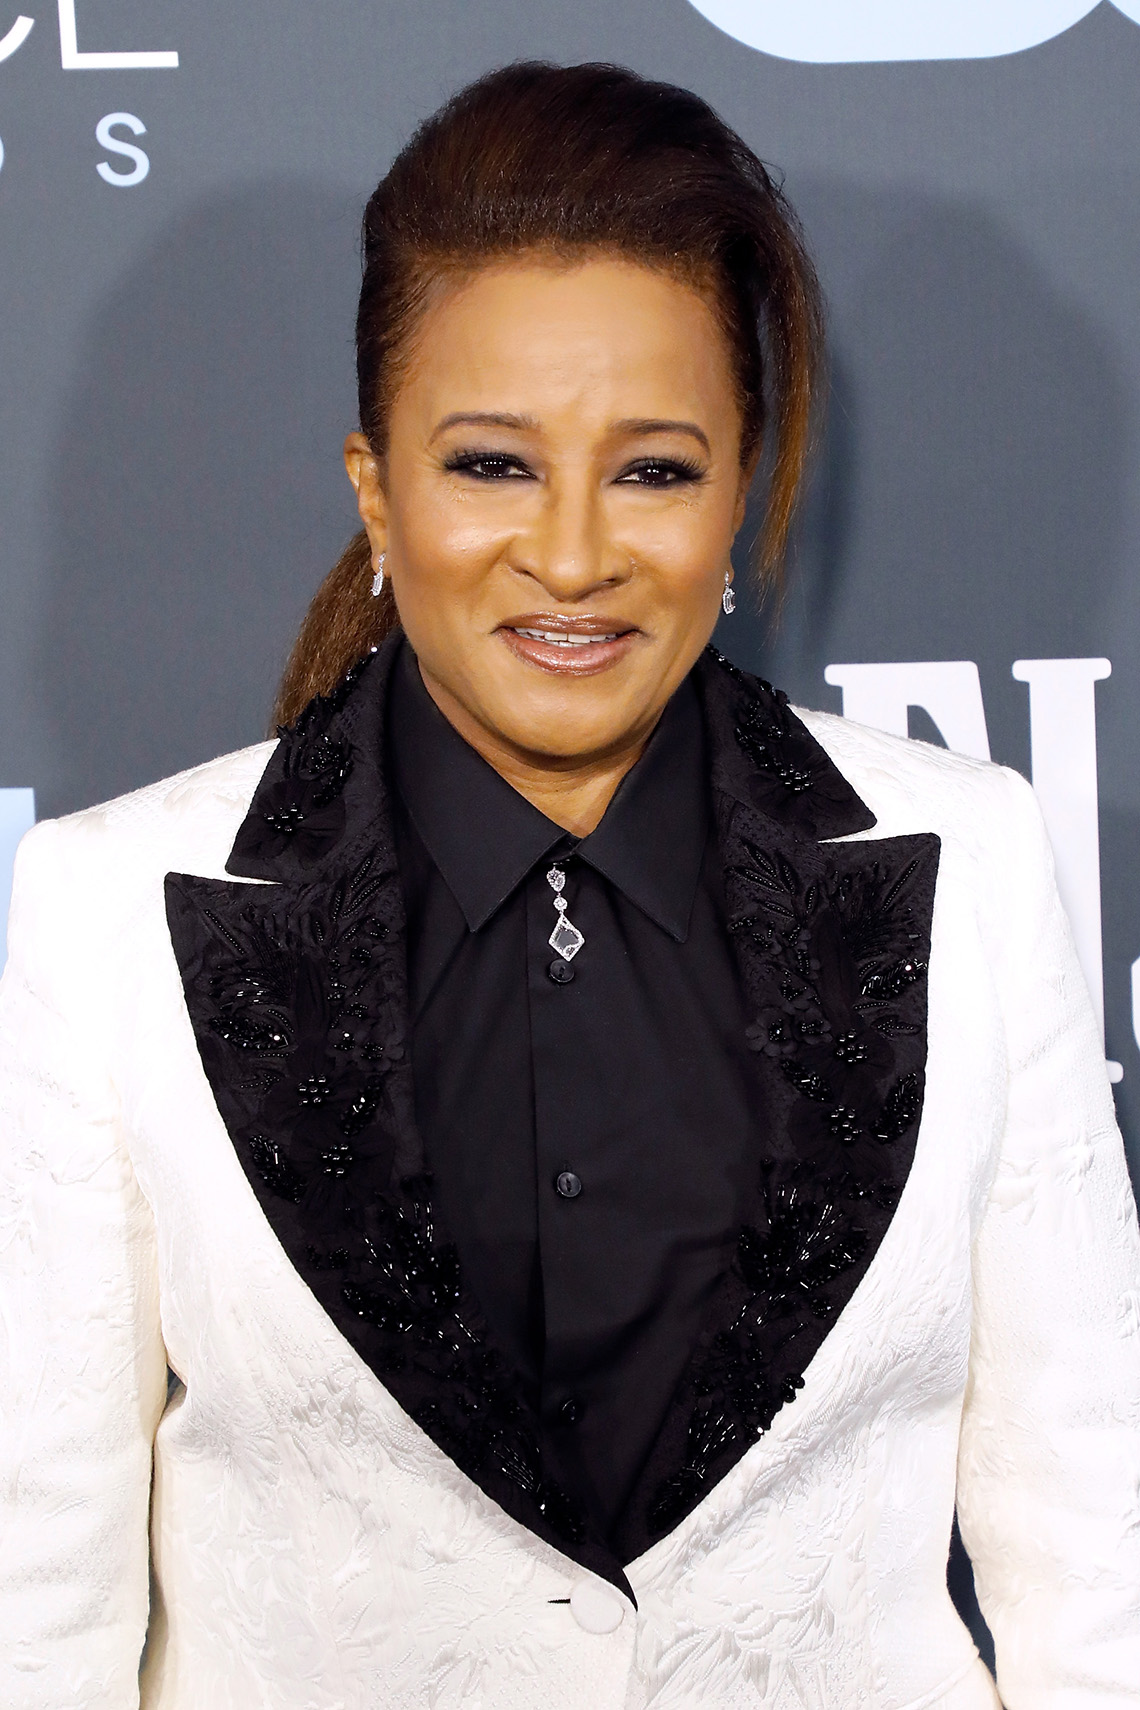 Wanda Sykes on the red carpet at the 25th Annual Critics Choice Awards